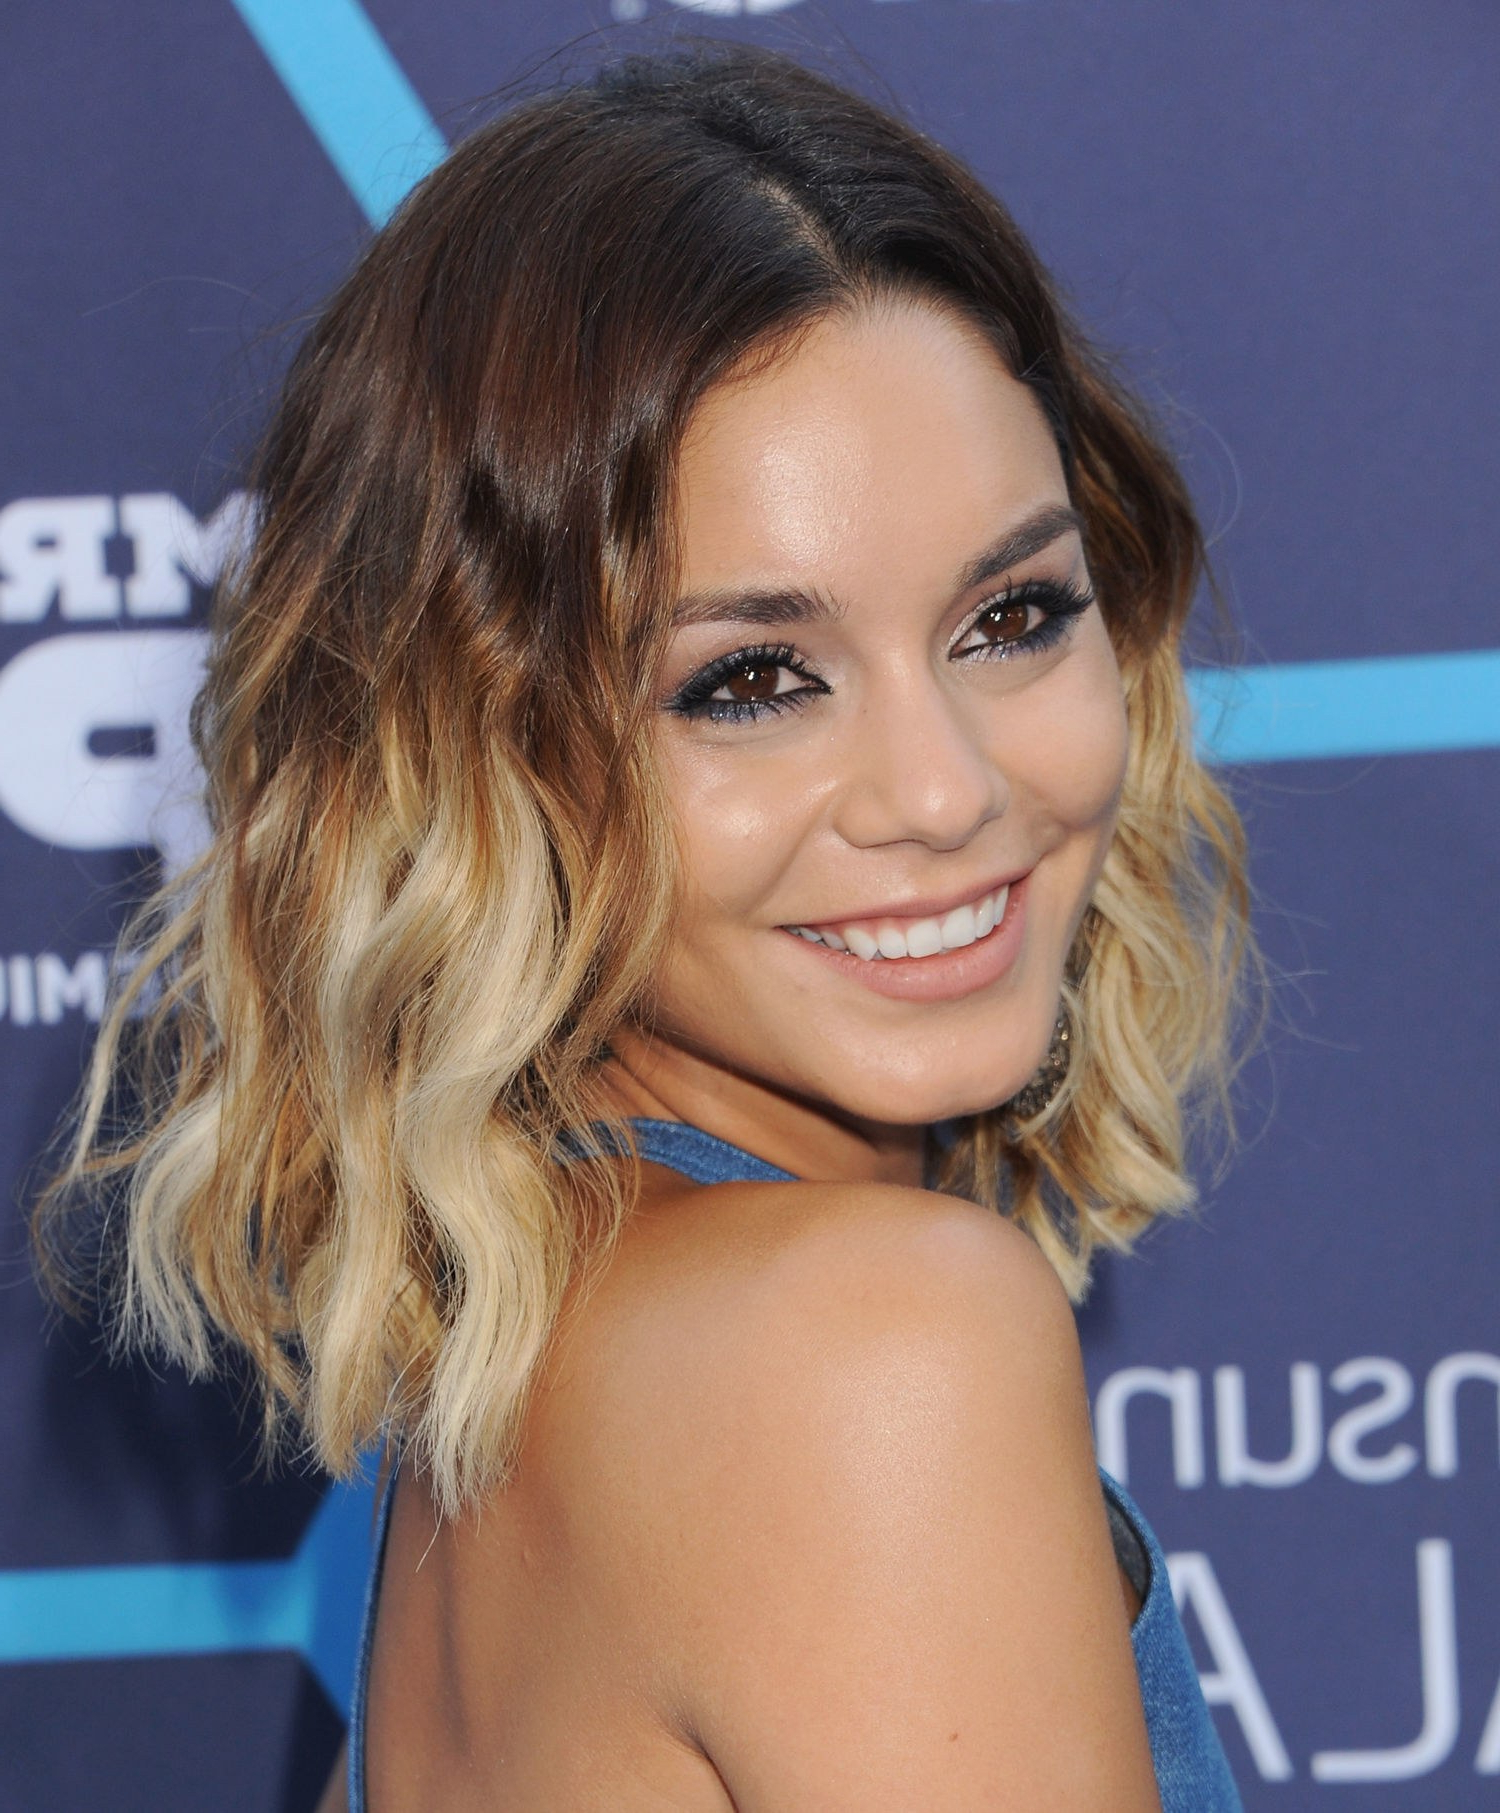 Vanessa Hudgens' Hair Has Reached Its Perfect Texture, Length, Color Pertaining To Vanessa Hudgens Short Haircuts (View 15 of 25)